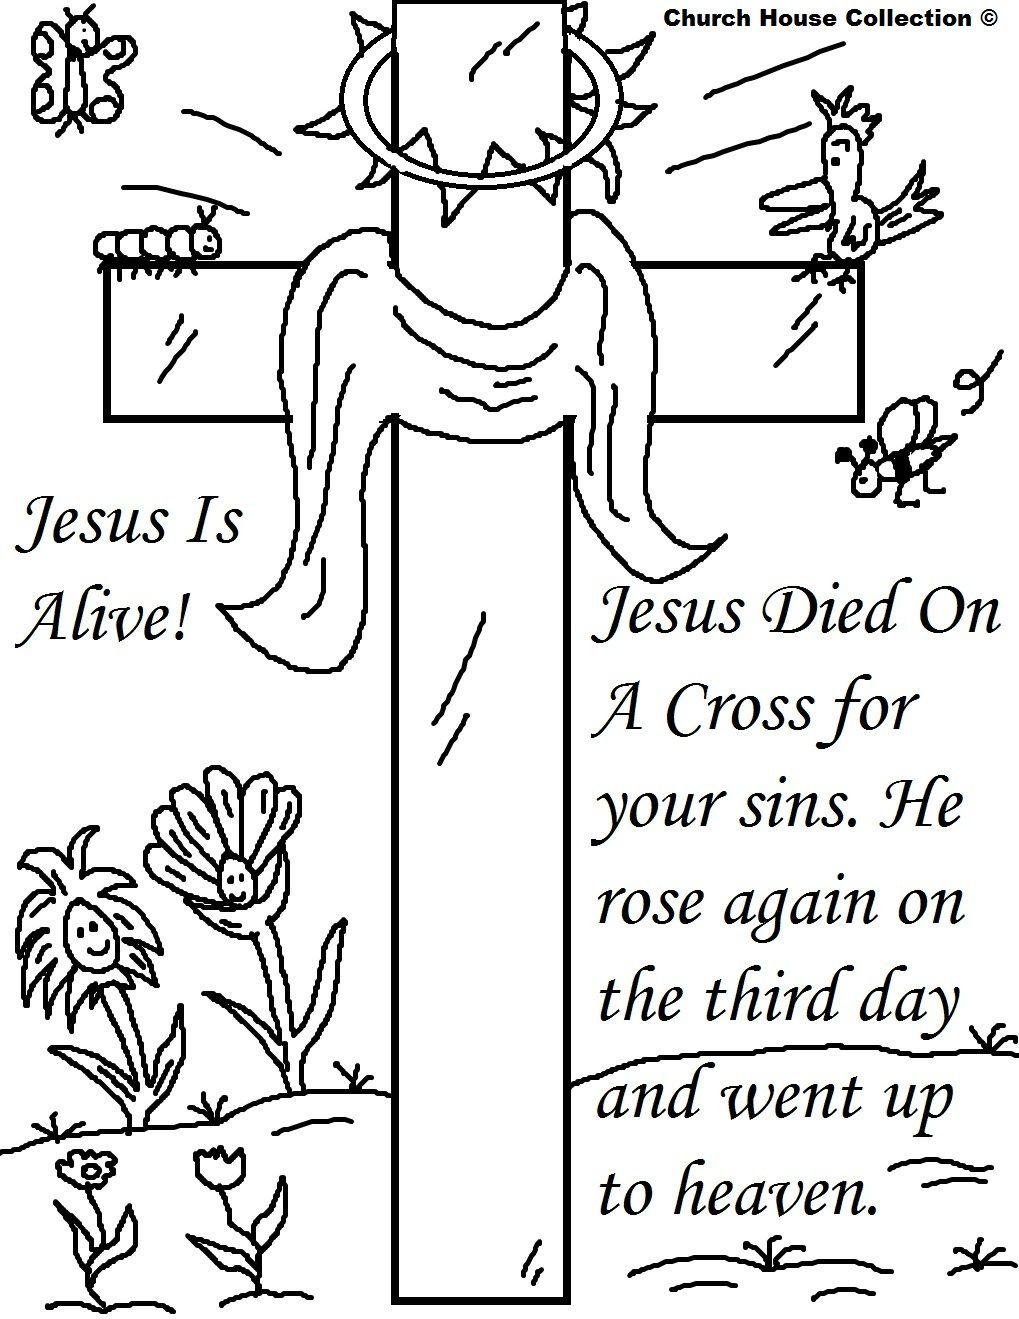 25 Religious Easter Coloring Pages | Pinterest | Easter colouring ...